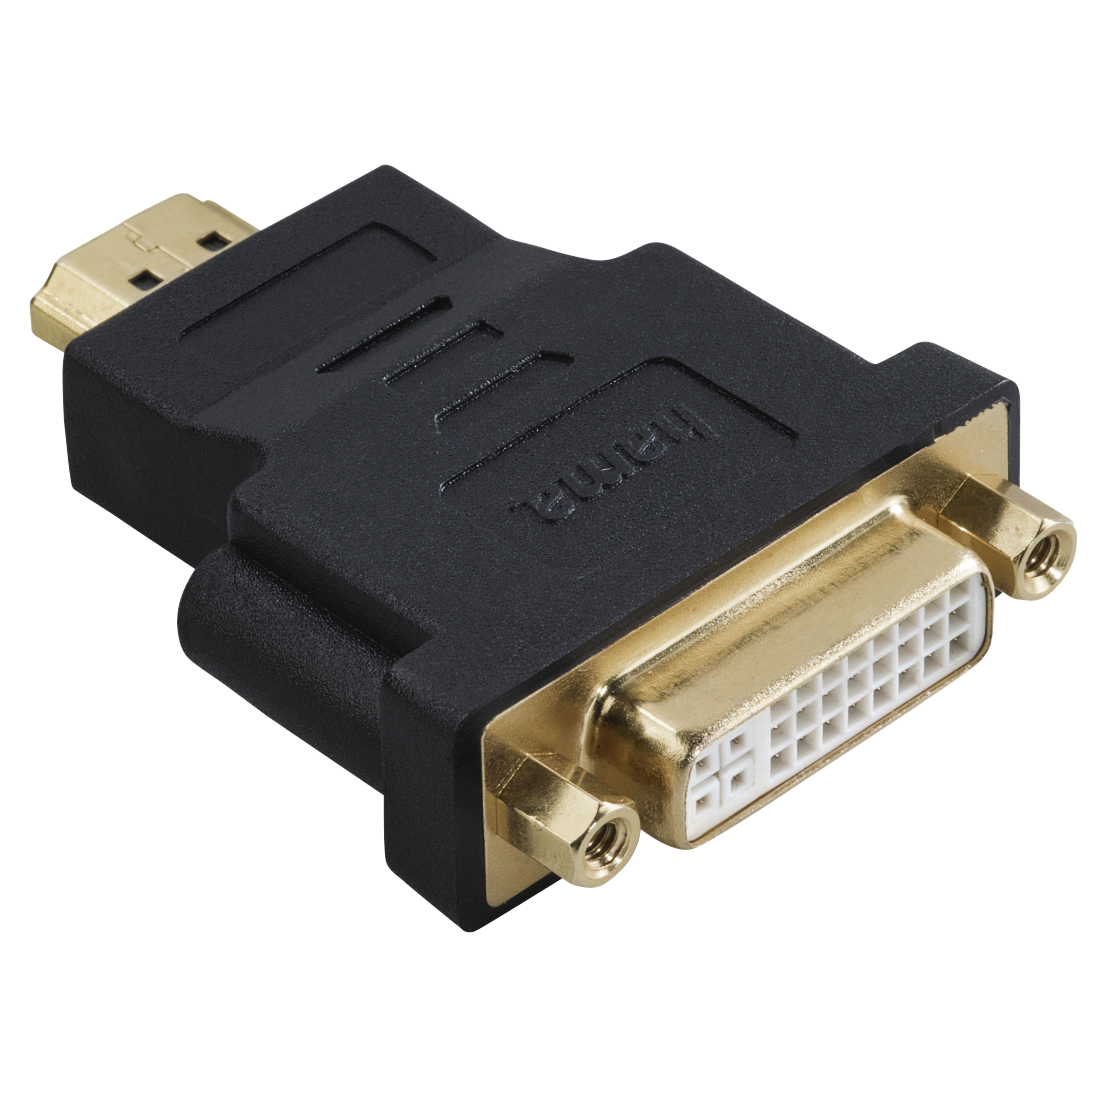 abx High-Res Image - Hama, DVI HDMI™ Adapter, HDMI™ plug - DVI socket, gold-plated, shielded